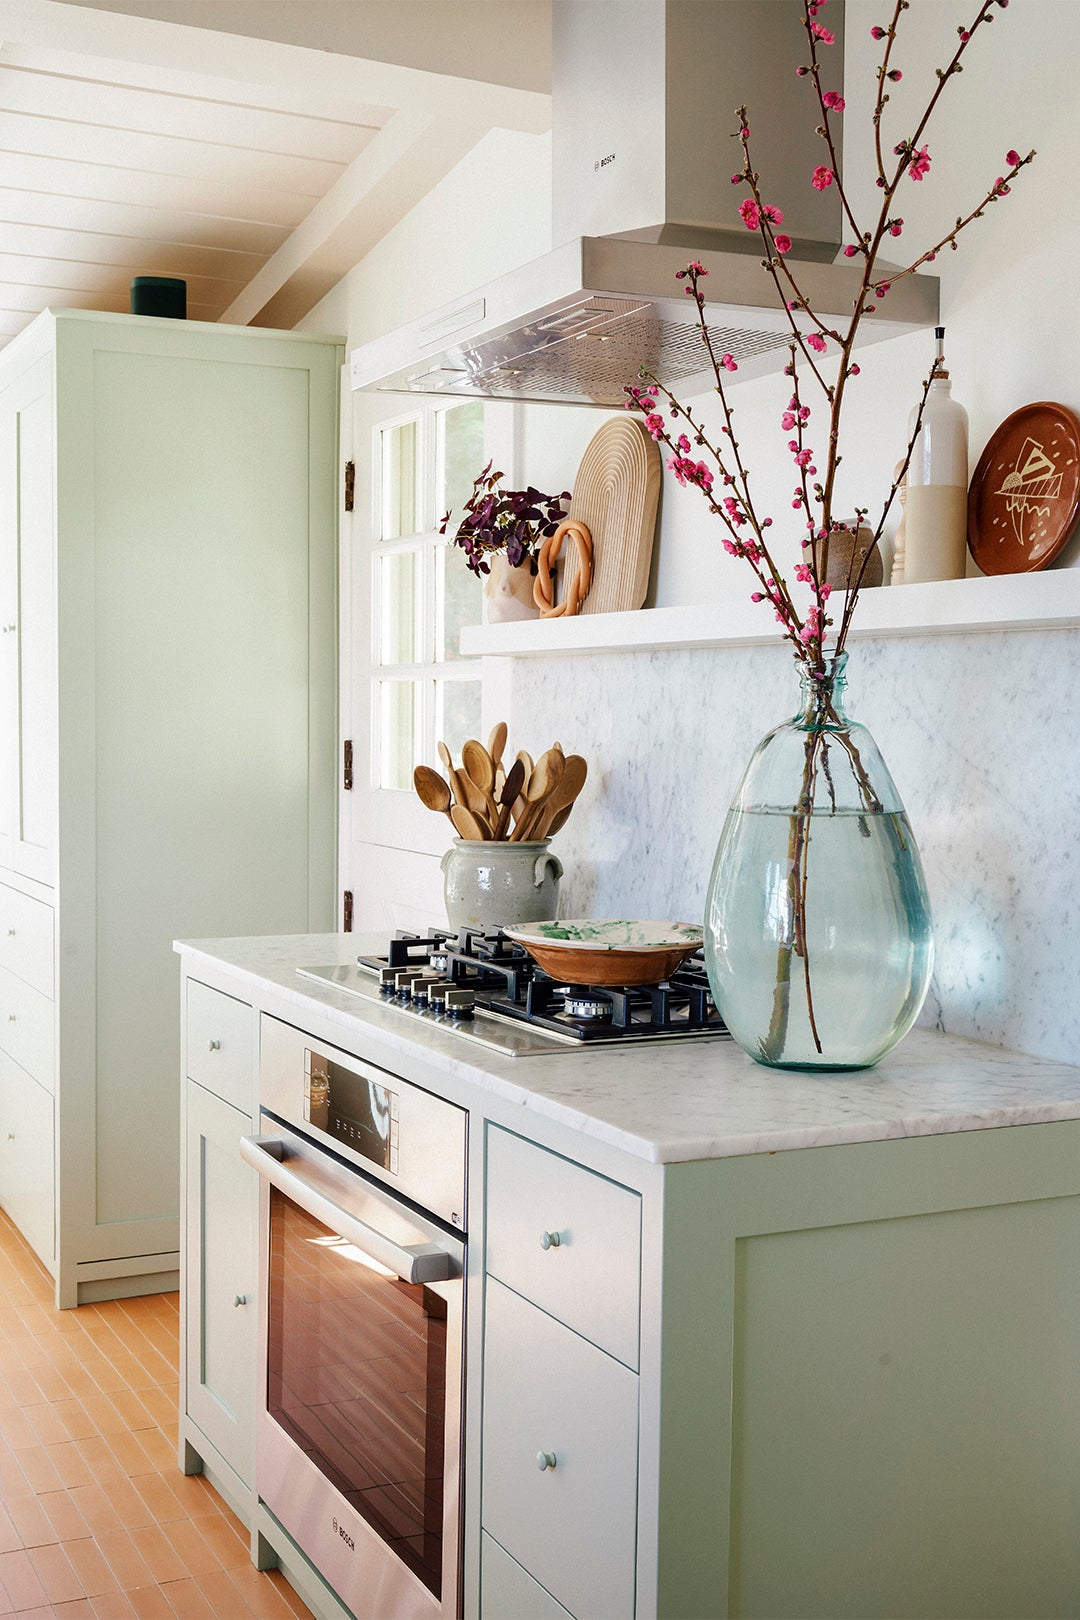 green lower cabinets around a stove